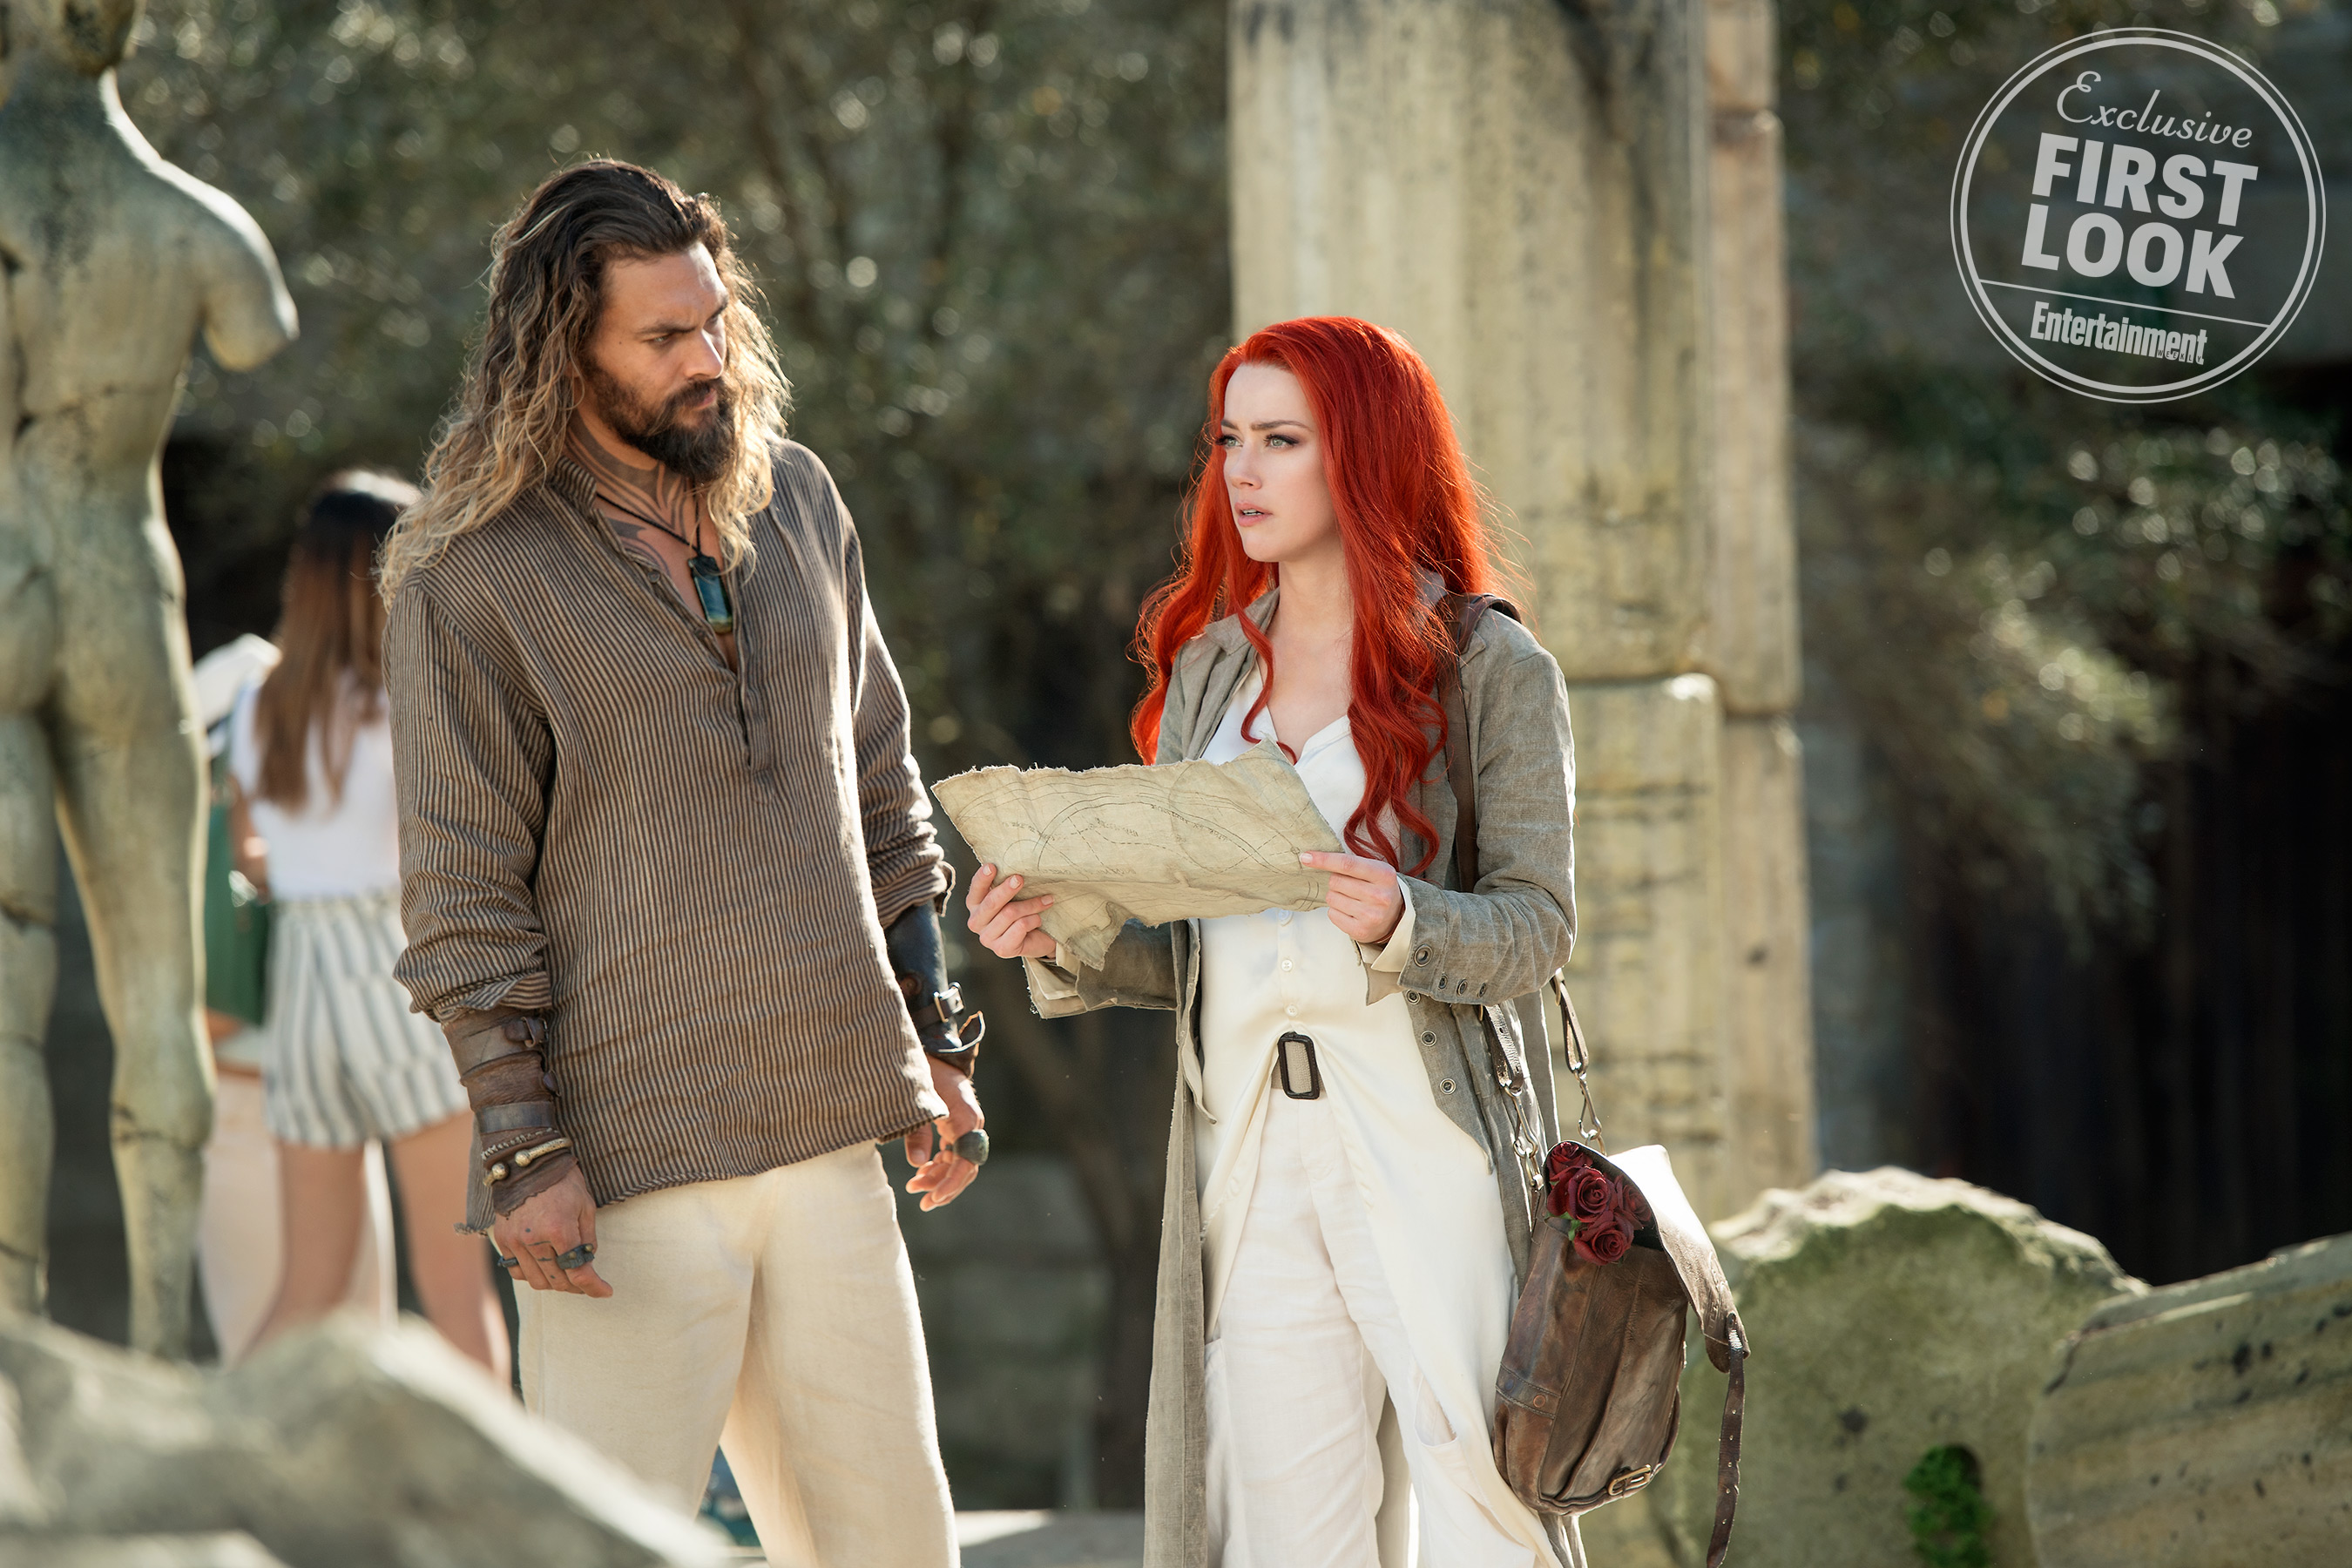 Aquaman starring Jason Momoa and Amber Heard